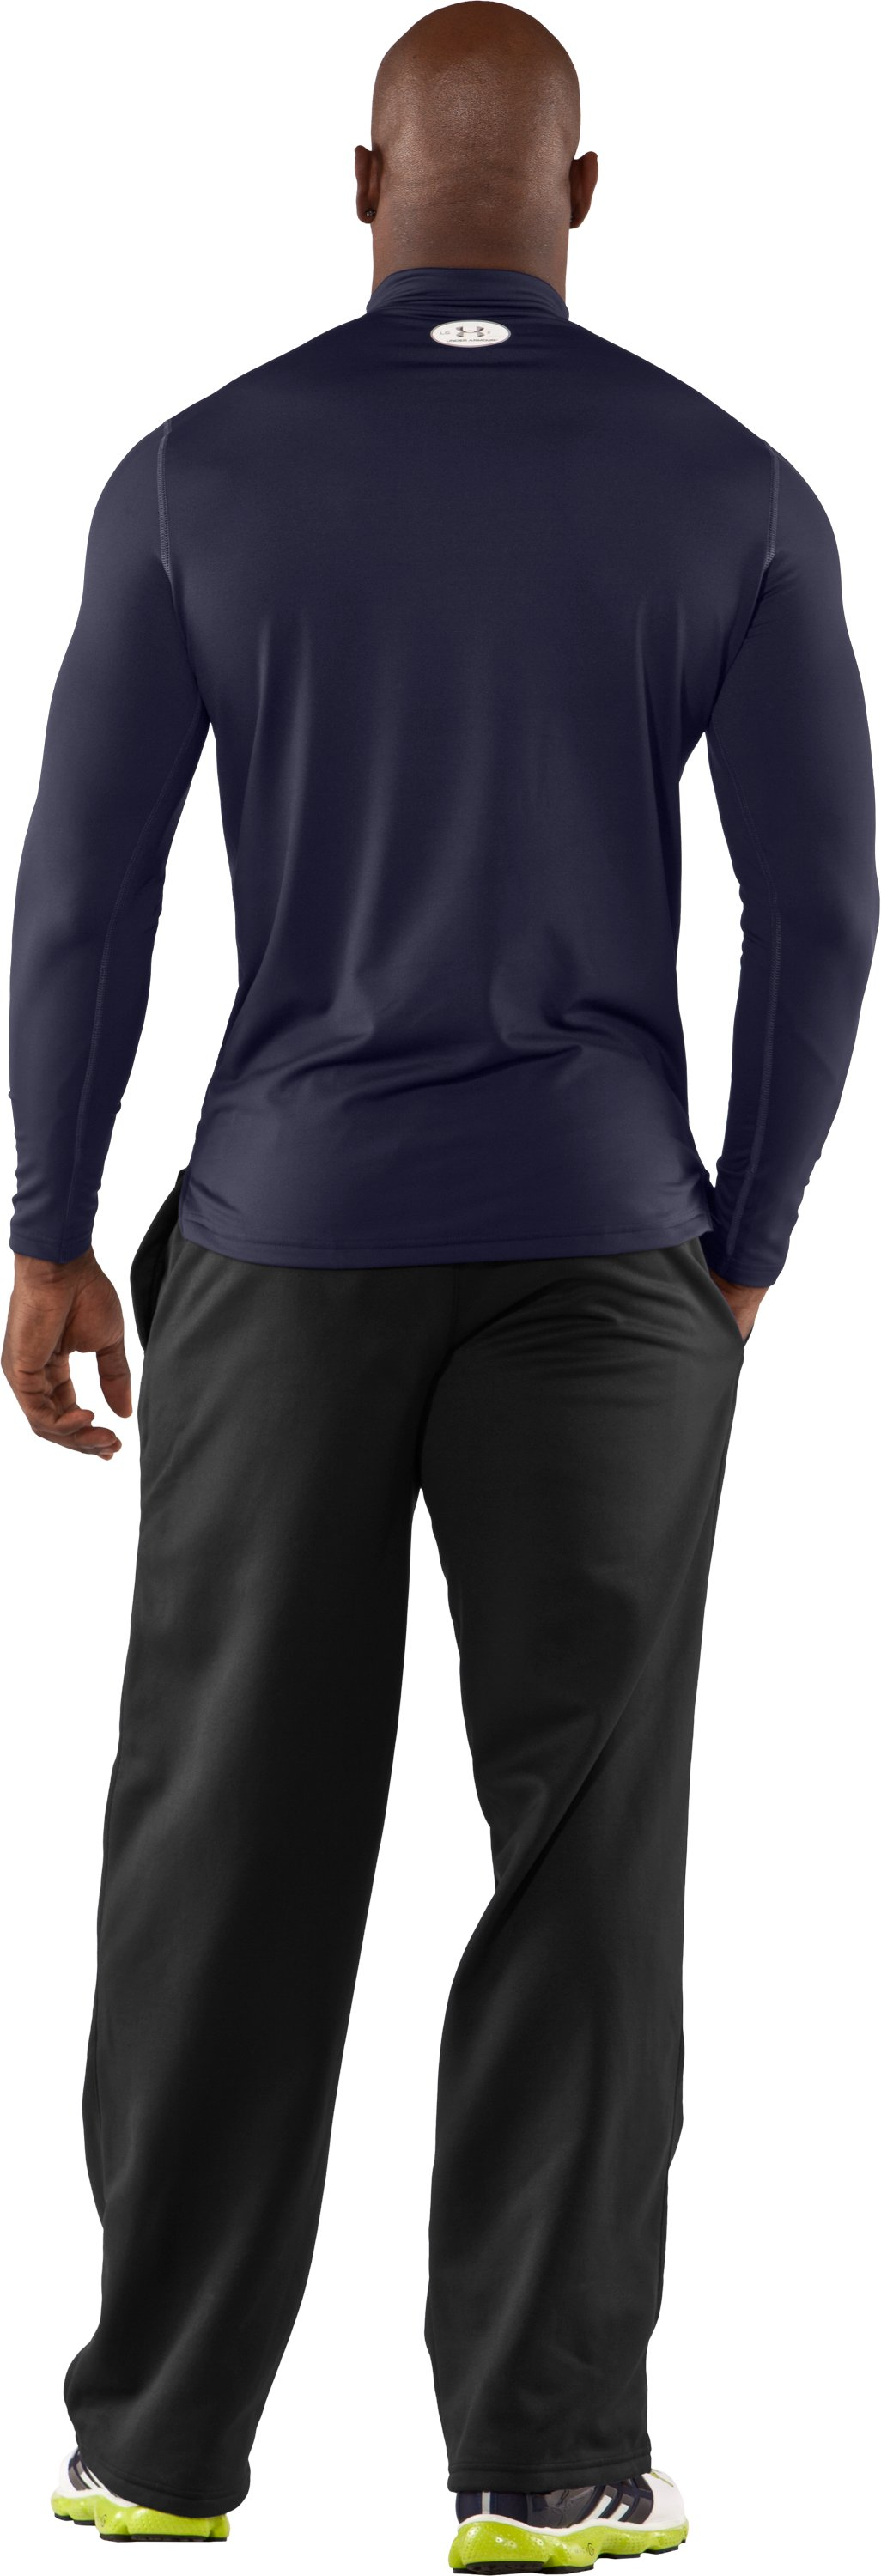 Men's ColdGear® Fitted Long Sleeve Mock, Midnight Navy, Back